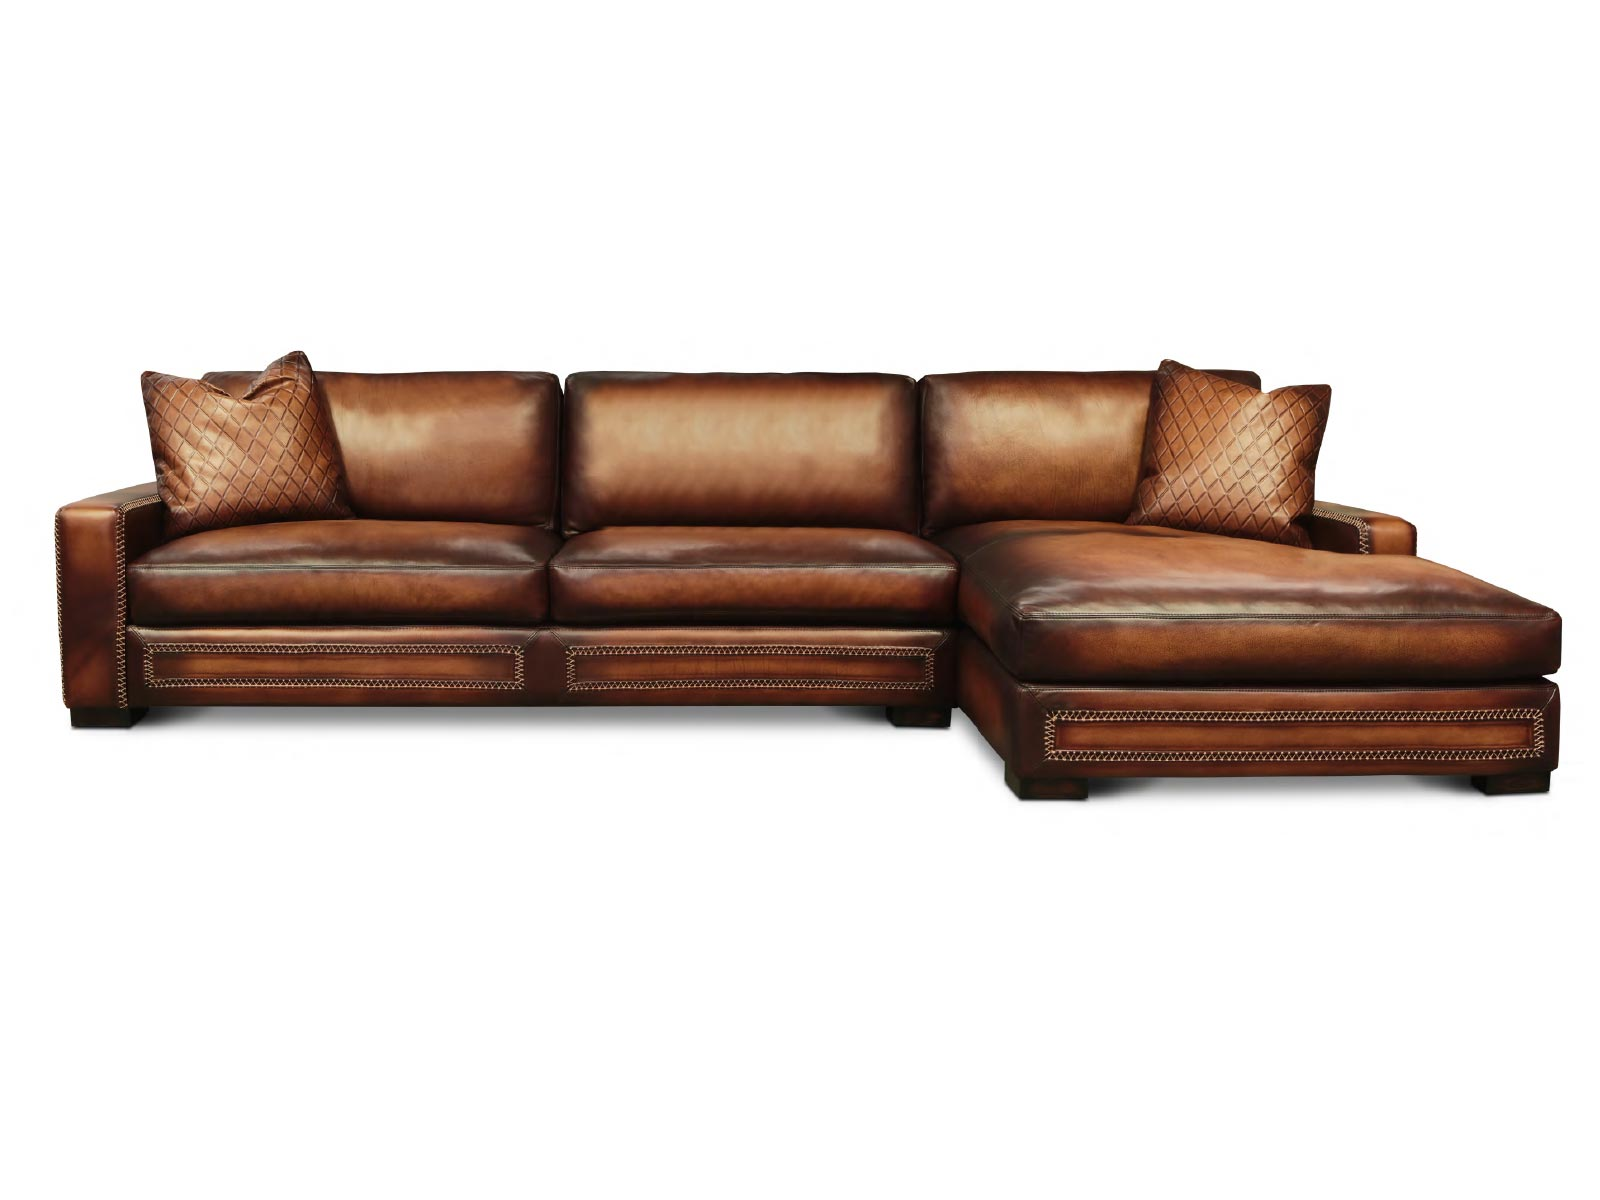 urban-farmhouse-sectional